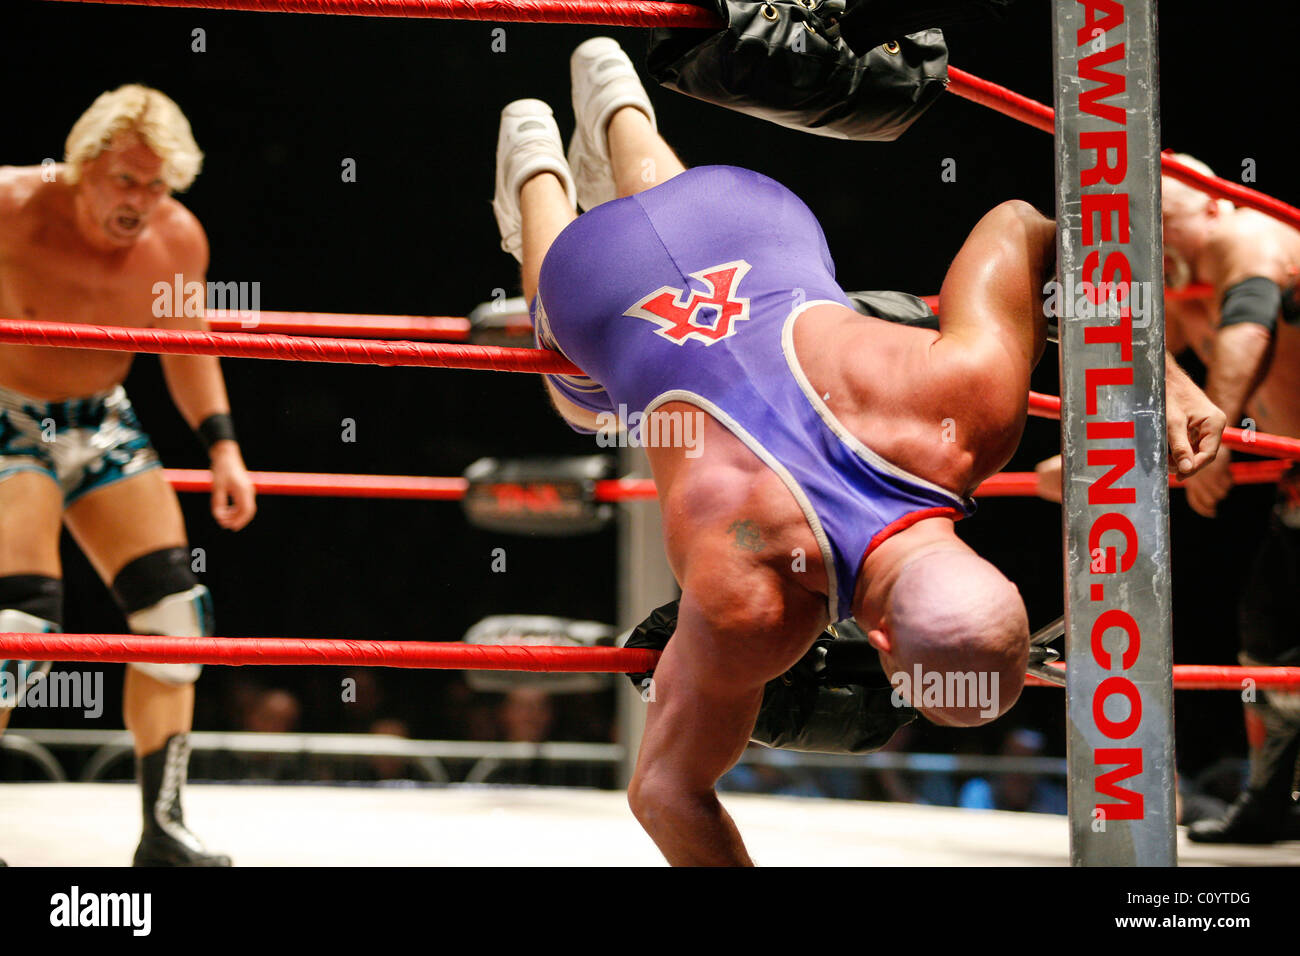 steel chair in wrestling covers for kitchen tna stock photos and images